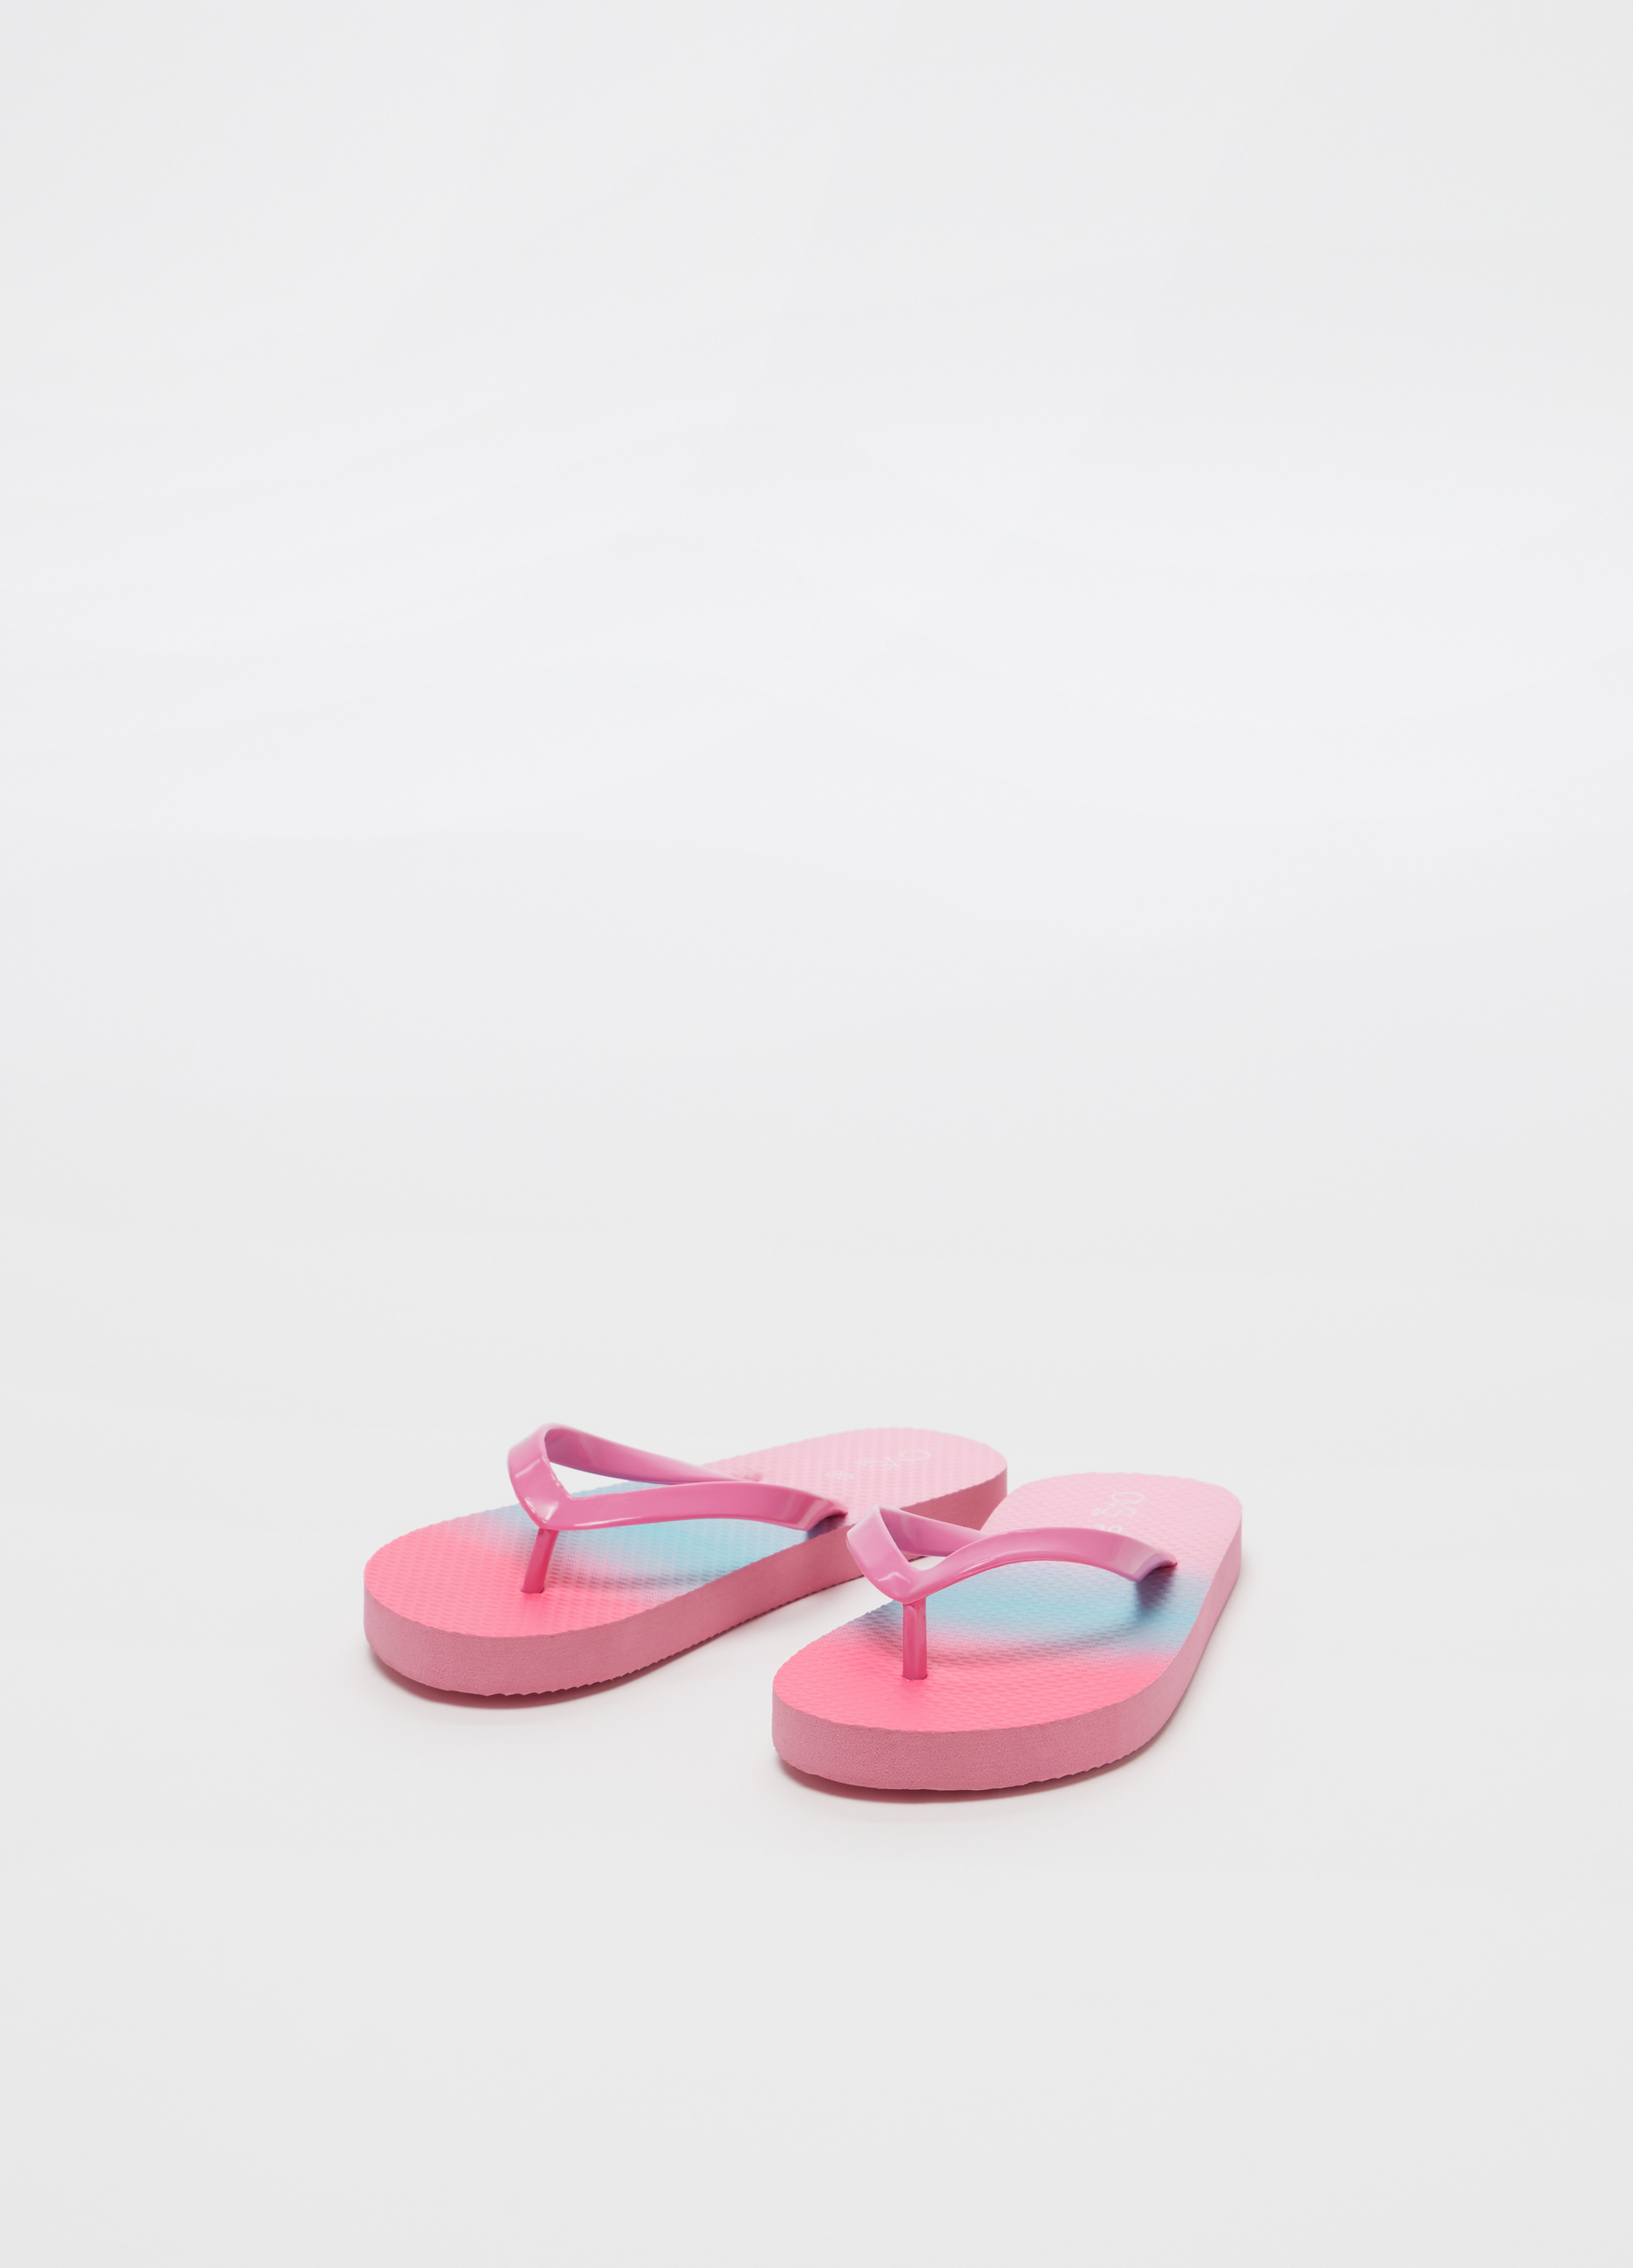 Thong Faded Sandals Two Tone With EffectOvs 1lFKJc